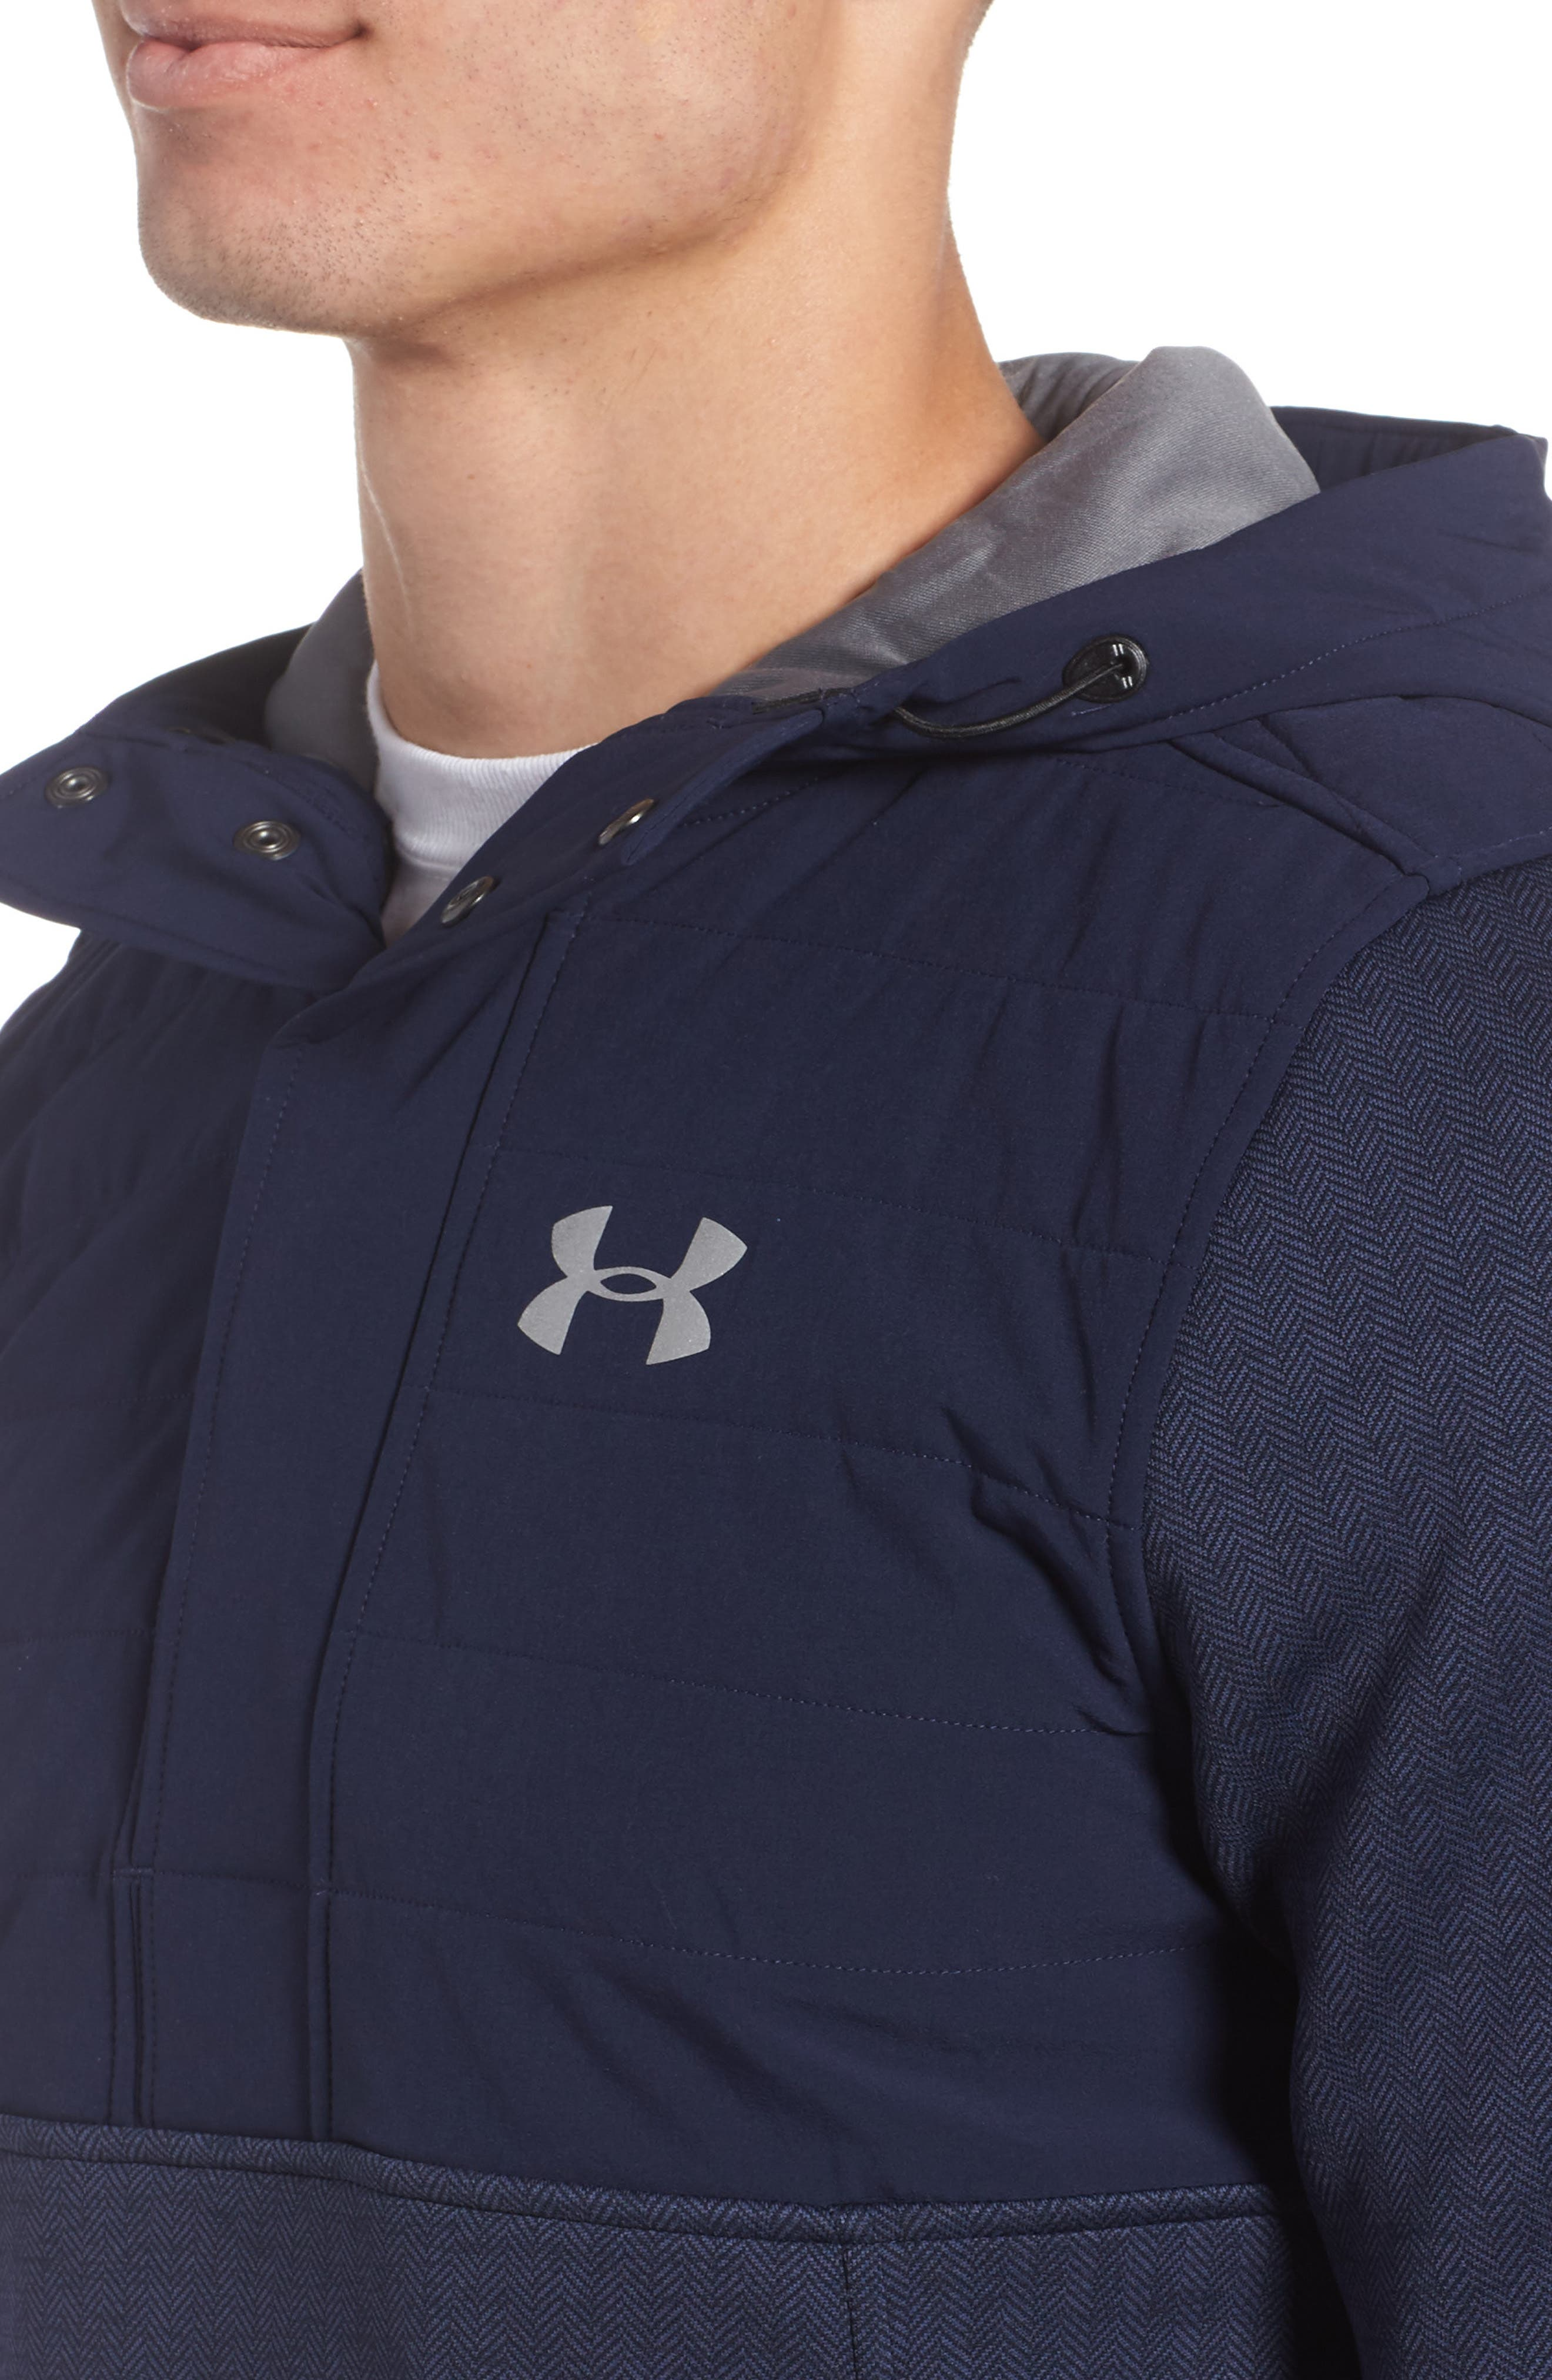 Henley Hoodie,                             Alternate thumbnail 4, color,                             Midnight Navy / Reflective